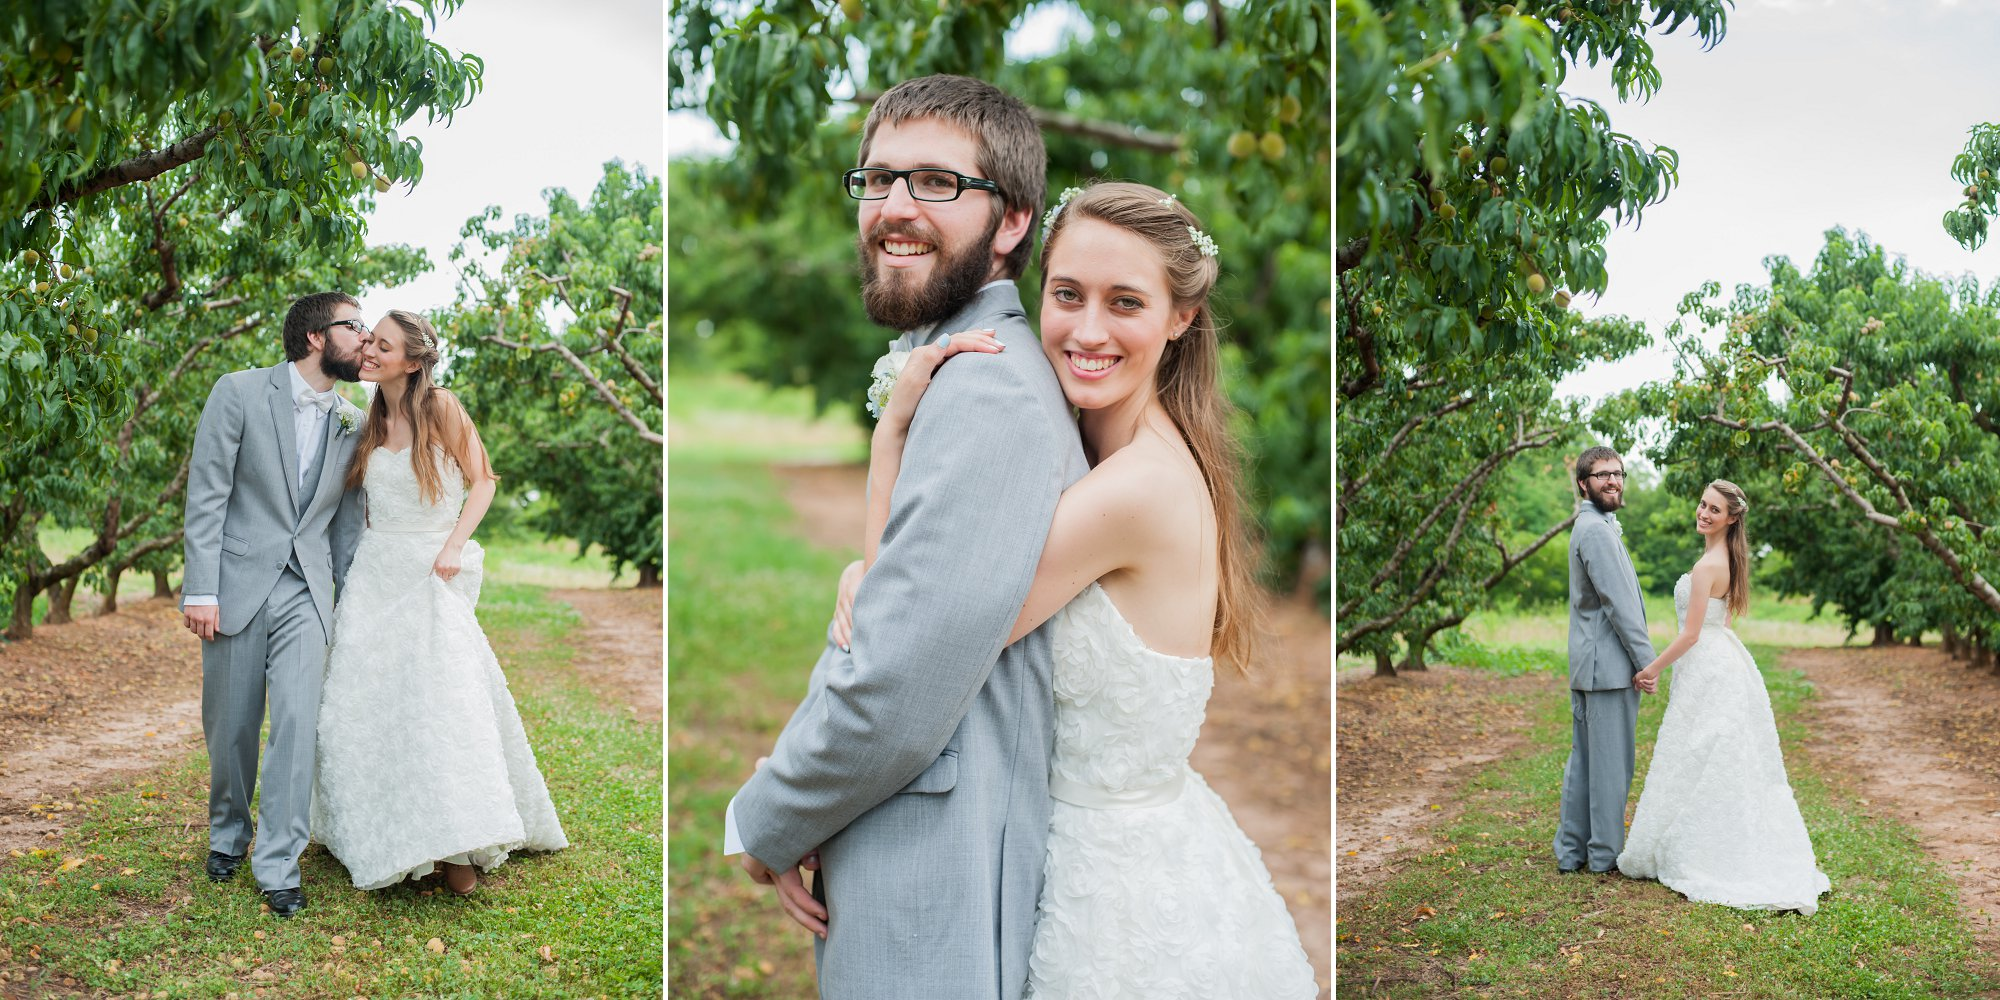 """(While walking) """"Josh give Angela a kiss on the cheek""""  """"Josh face the trees, Angela put your right hand around Josh's waist and the left one under his arm and lay your head down softly"""" (Typically we mimic the motion as we explain poses like these)   (Far right) """"Turn around walk the other way, now stop and look at me"""""""